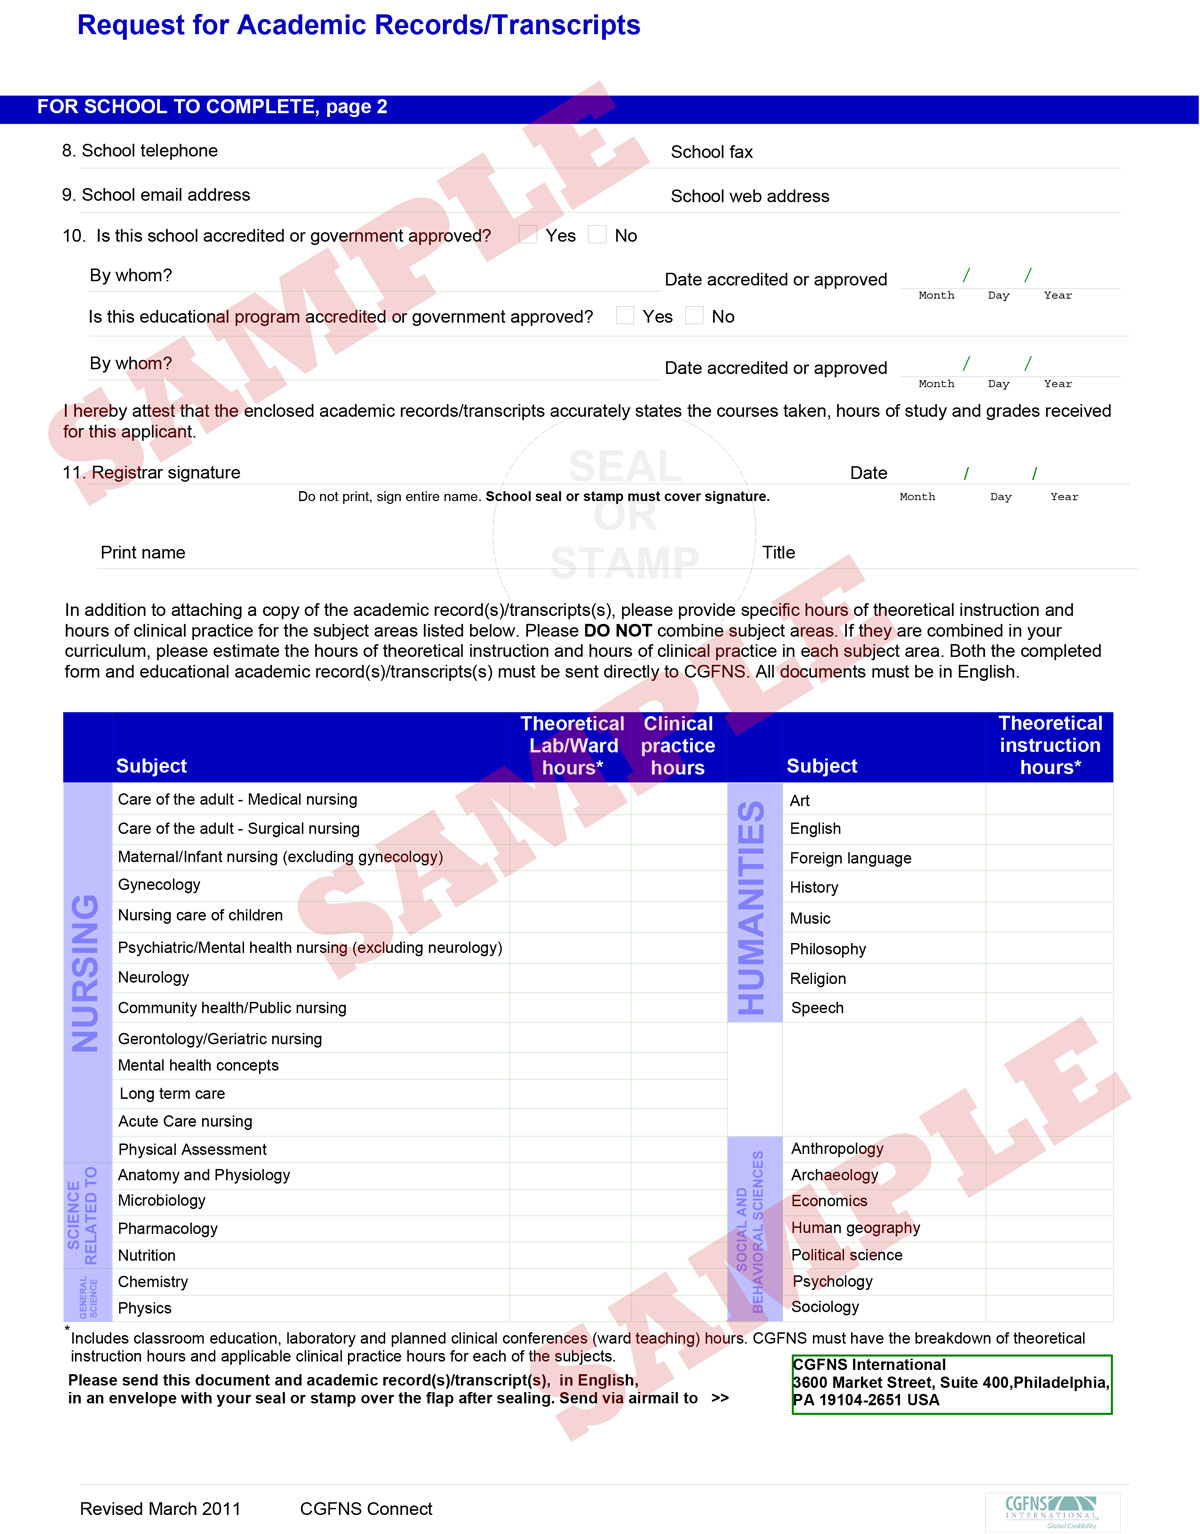 Request For Academic Records Or Transcripts Page 2 Cgfns